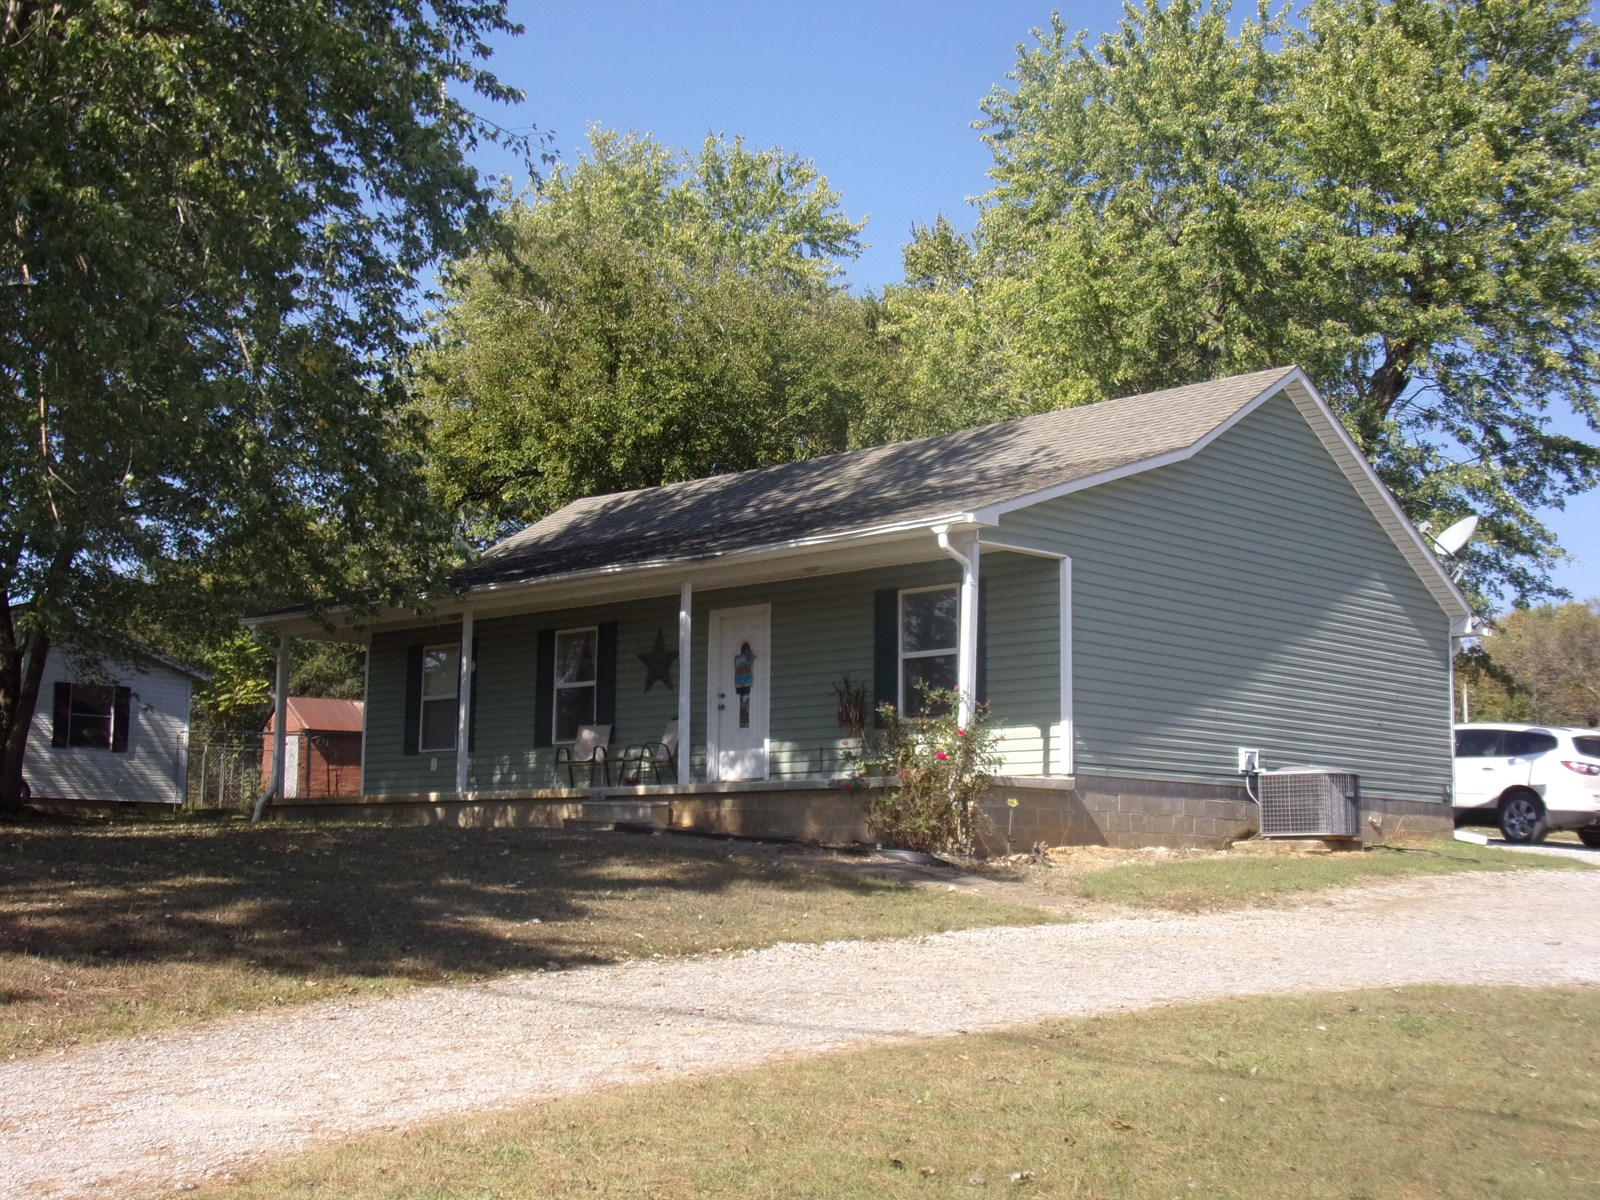 Country Home In North Arkansas For Sale, Maynard, Arkansas